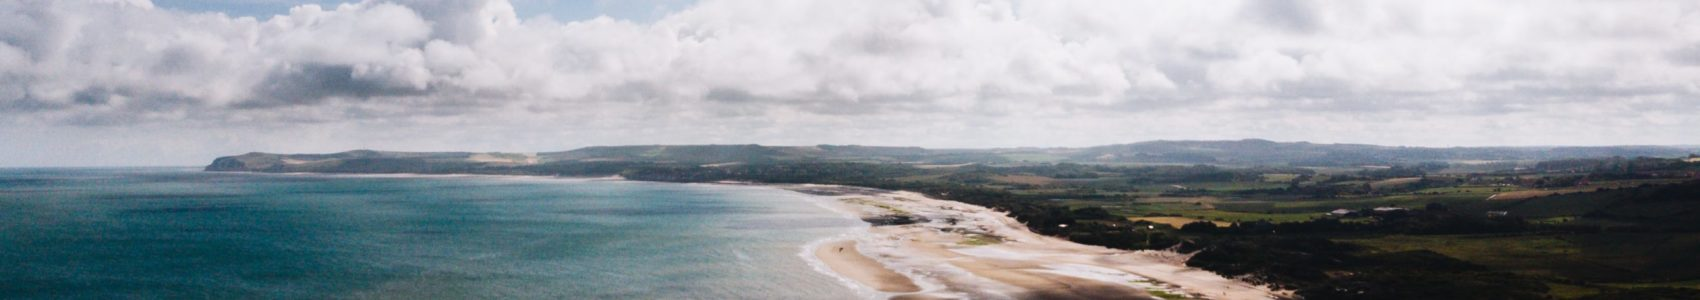 An aerial shot of beautiful beach shore near grassy field with a cloudy sky in the background in France